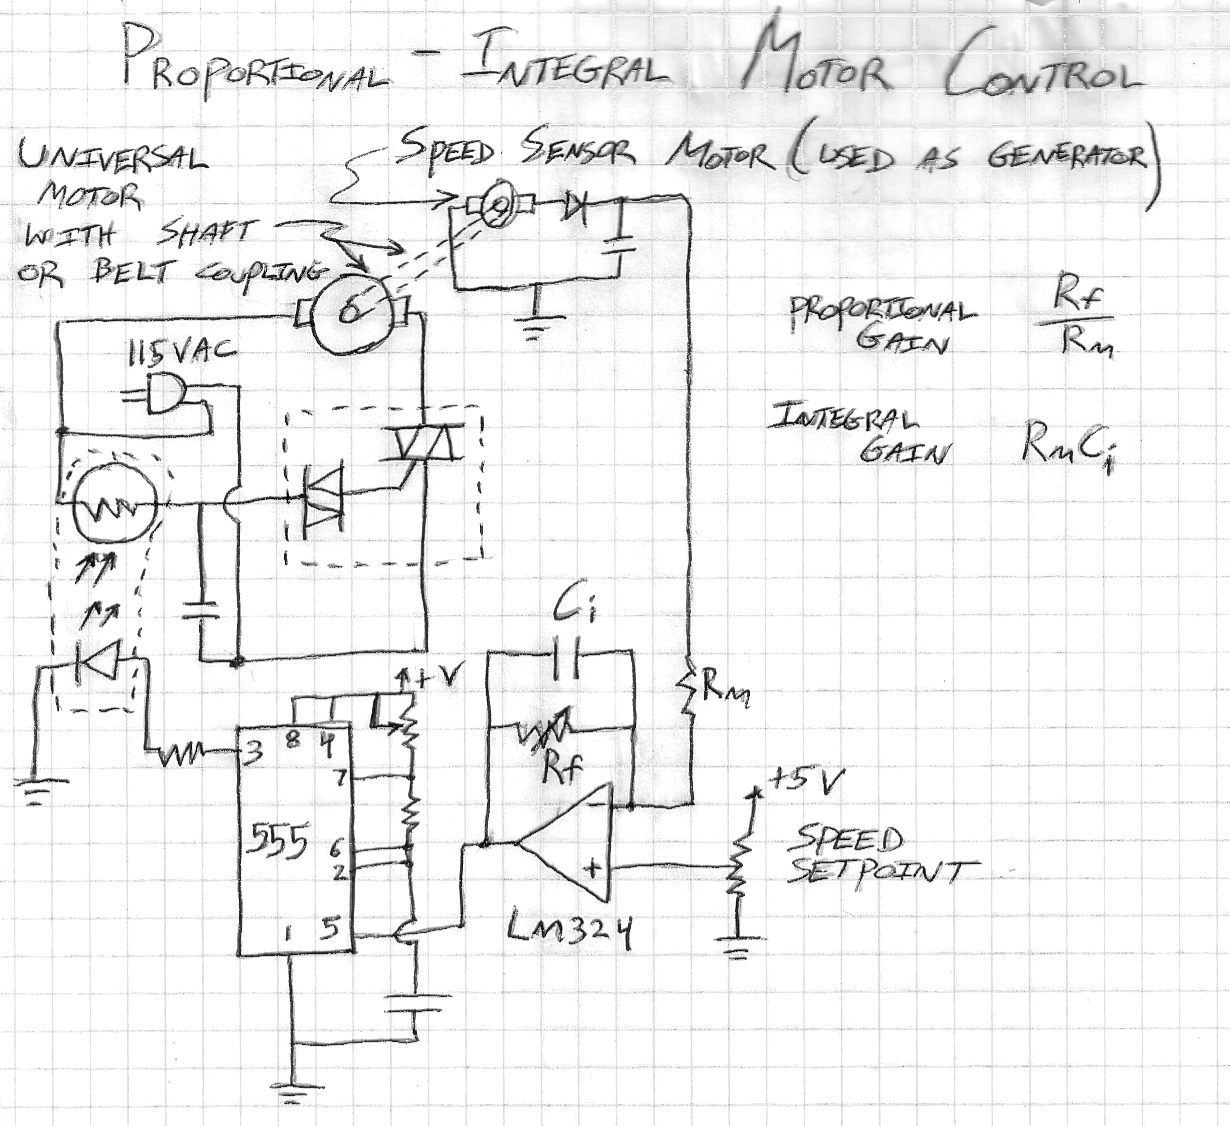 Ben Krasnow 2011 Ac Motor Speed Control Circuit Diagram Additionally Pcb Trace Width This Is A That Allows Safe And Easy Of 115vac Universal Motors Like Drill Blender Other Power Tools